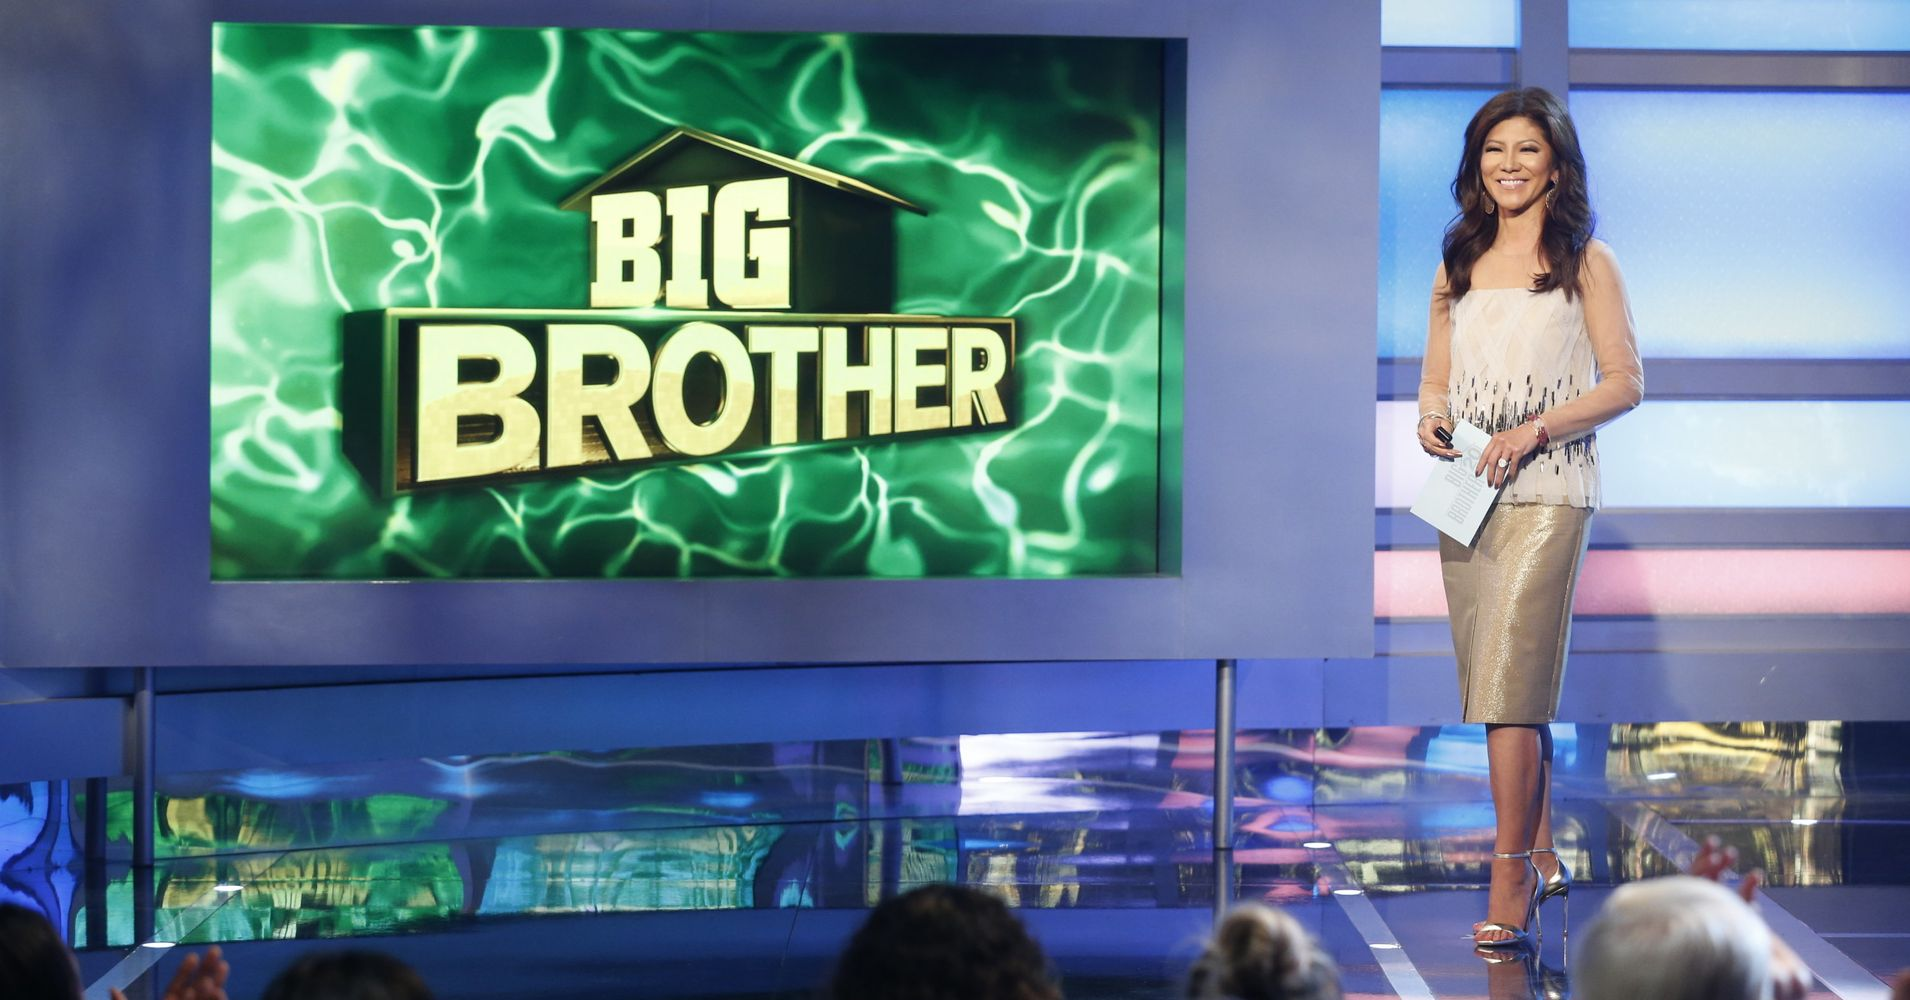 Julie Chen Signs Off 'Big Brother' With A Subtle Nod To Husband Les Moonves